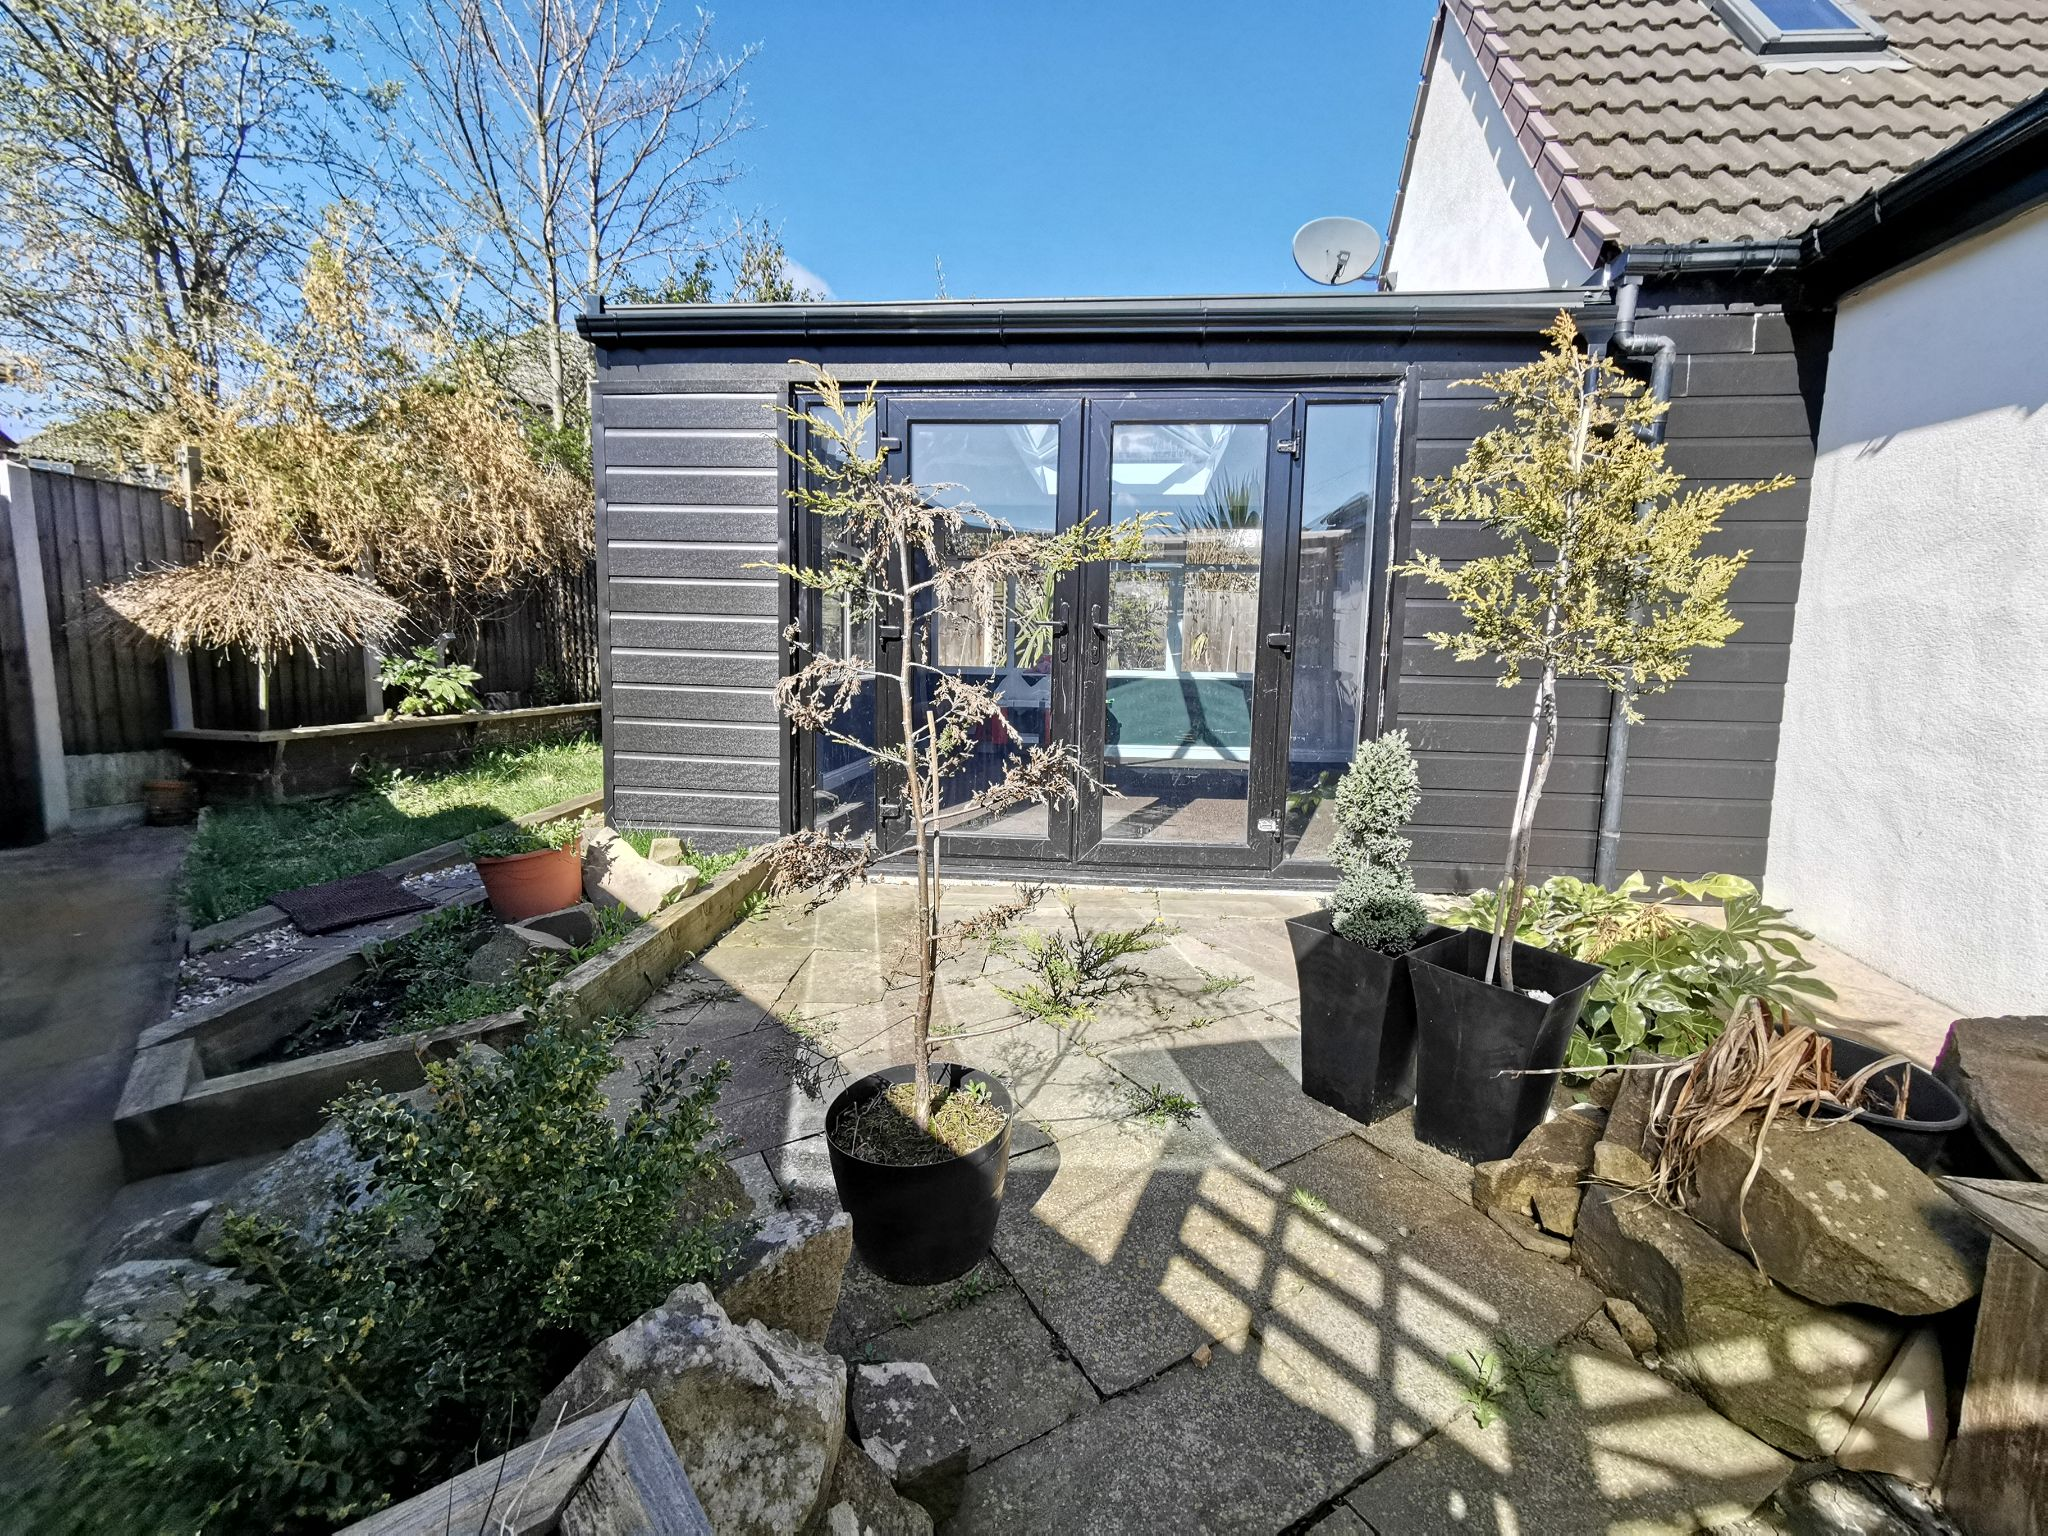 6 bedroom detached bungalow For Sale in Bradford - Photograph 4.